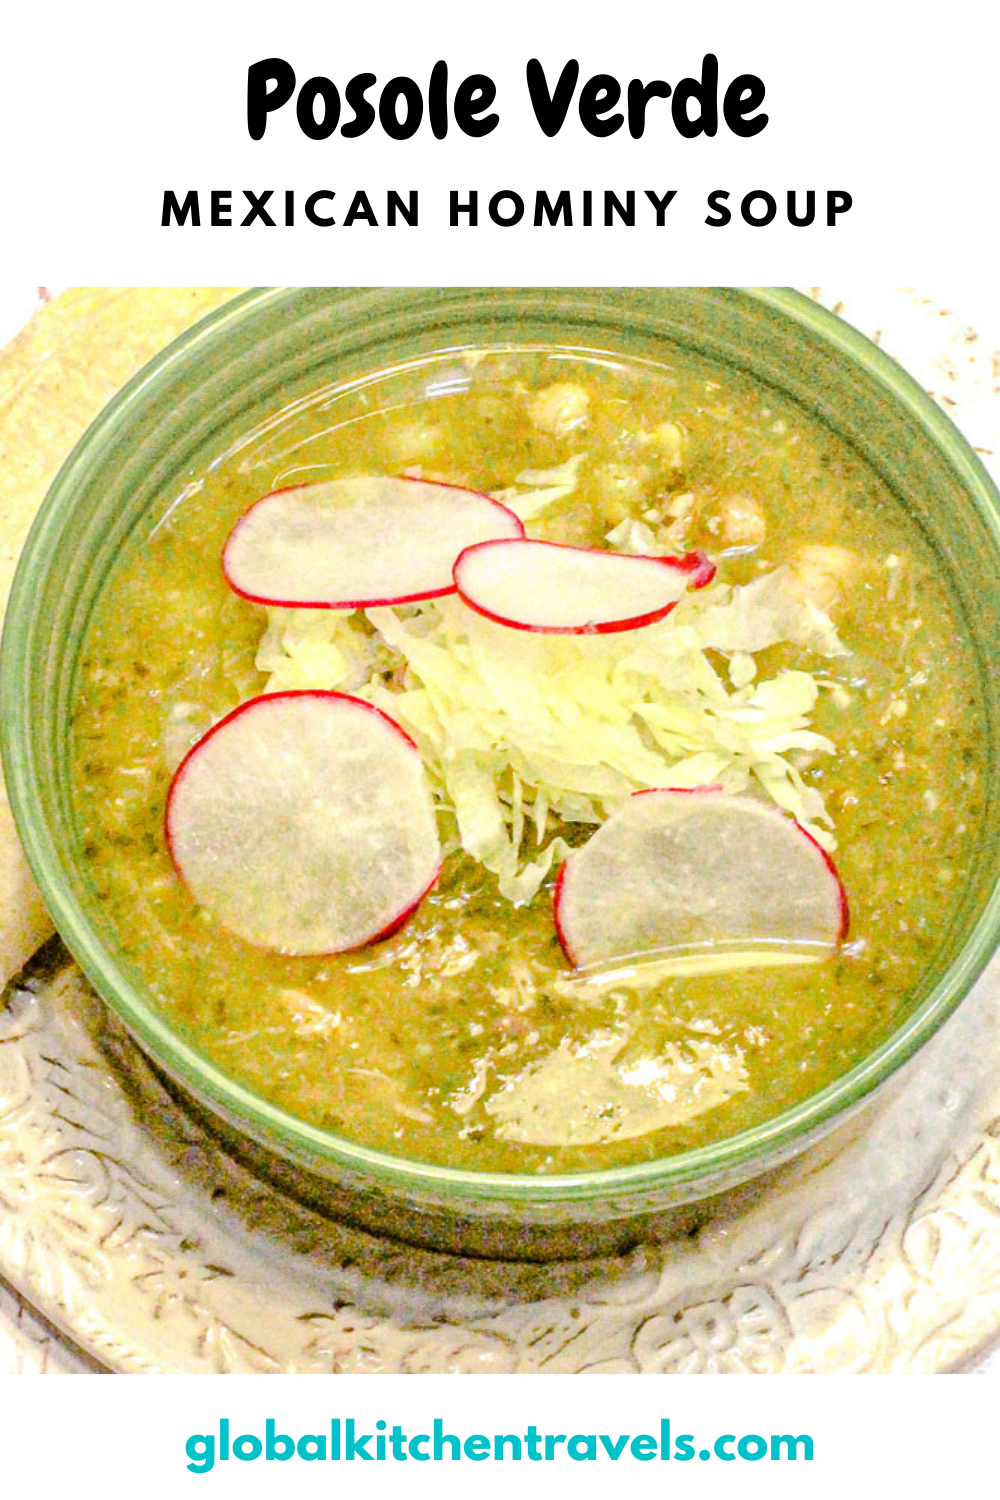 bowl of pozole verde soup garnished with radish and cabbage with text